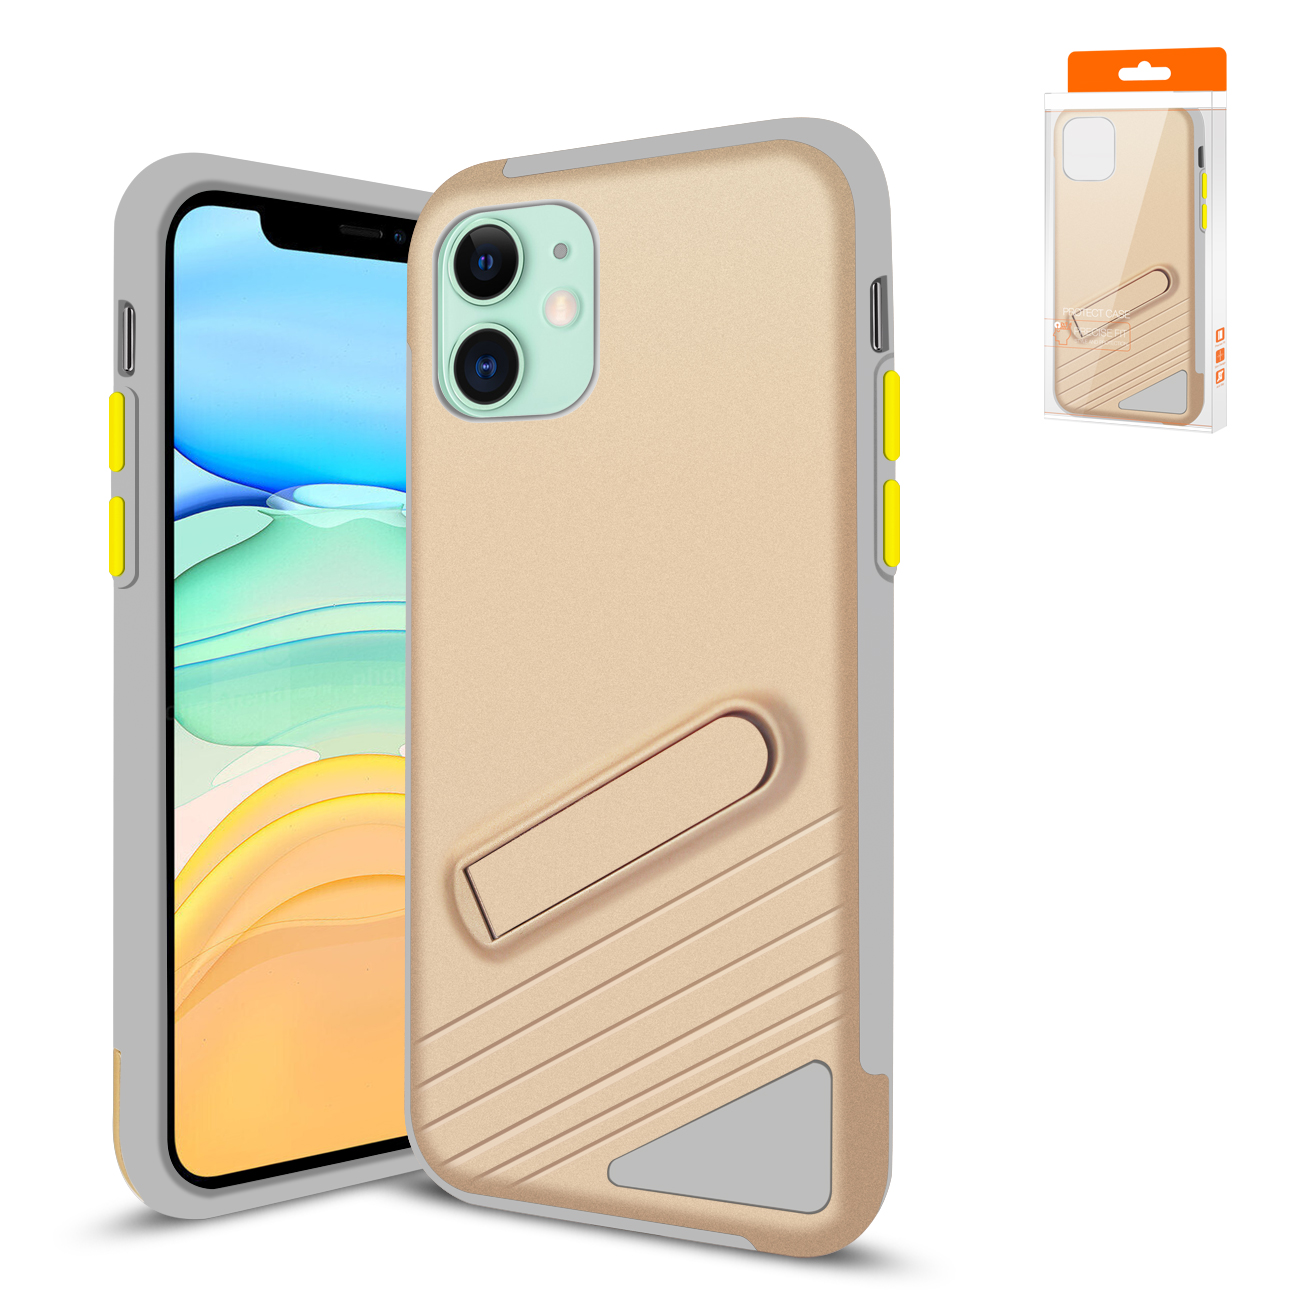 Reiko Apple iPhone 11 Armor Cases In Gold